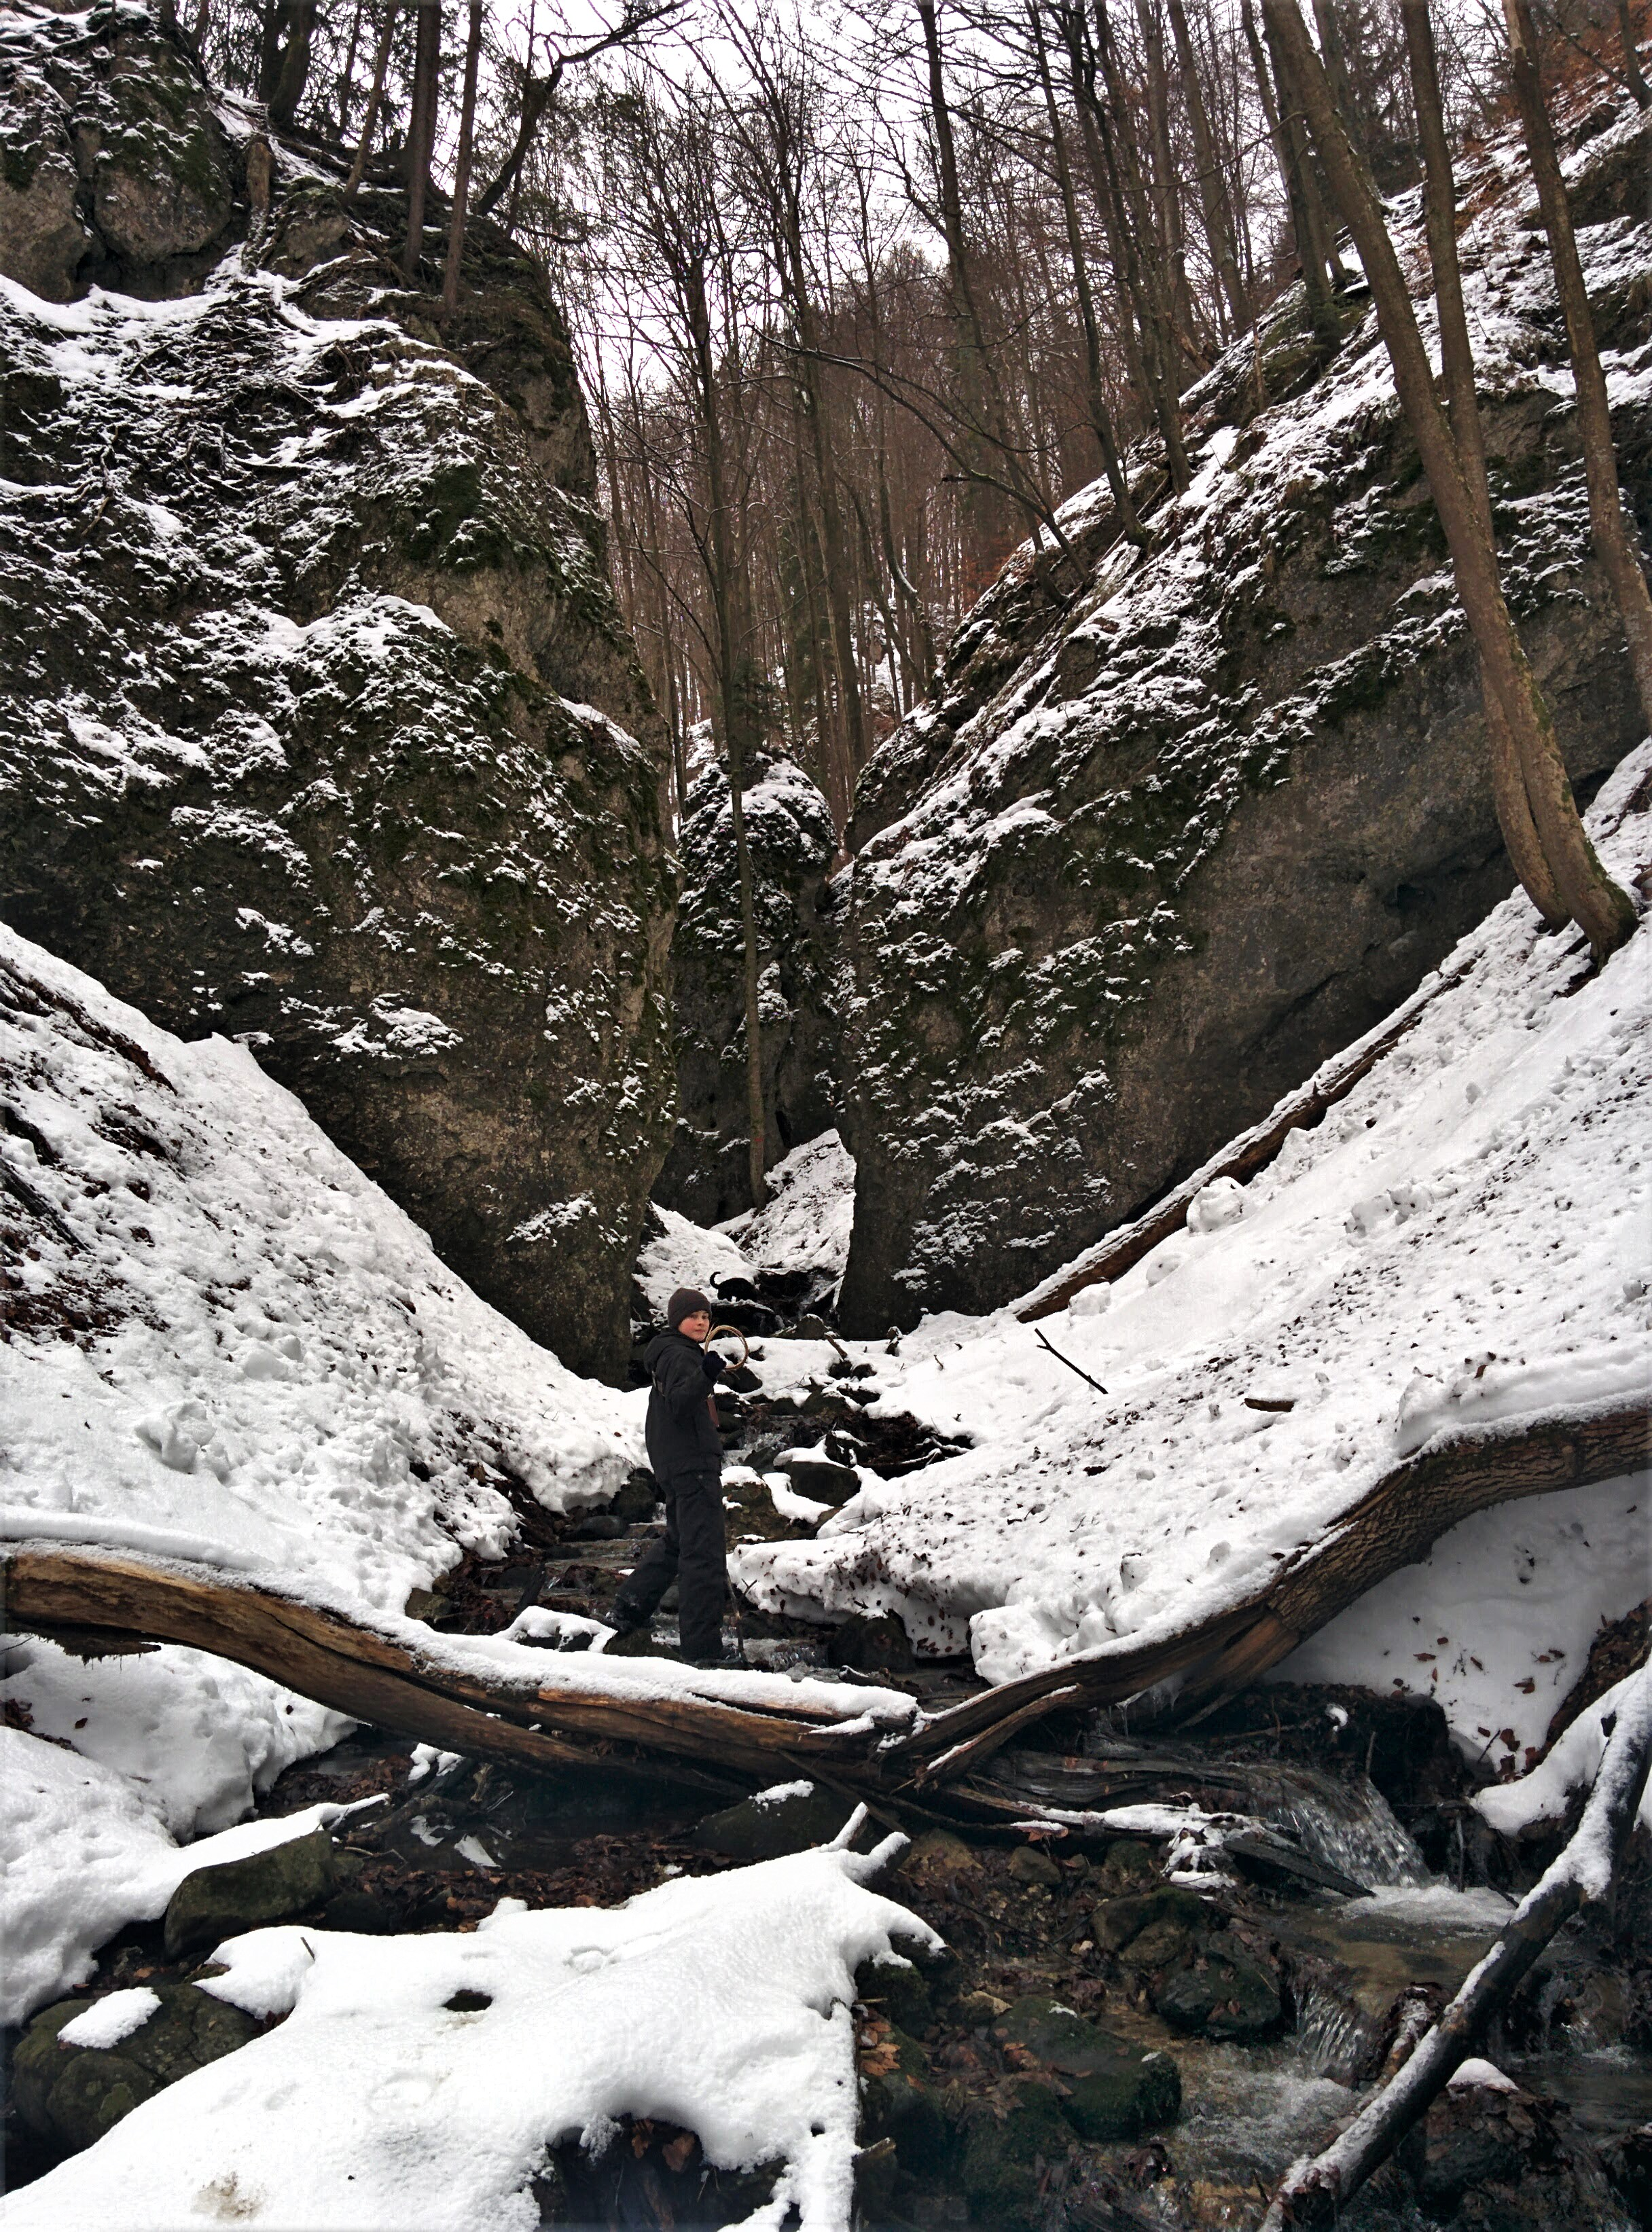 Entering Snake's Canyon from the east. This is in the valley of Fintova Hill which is near our property.